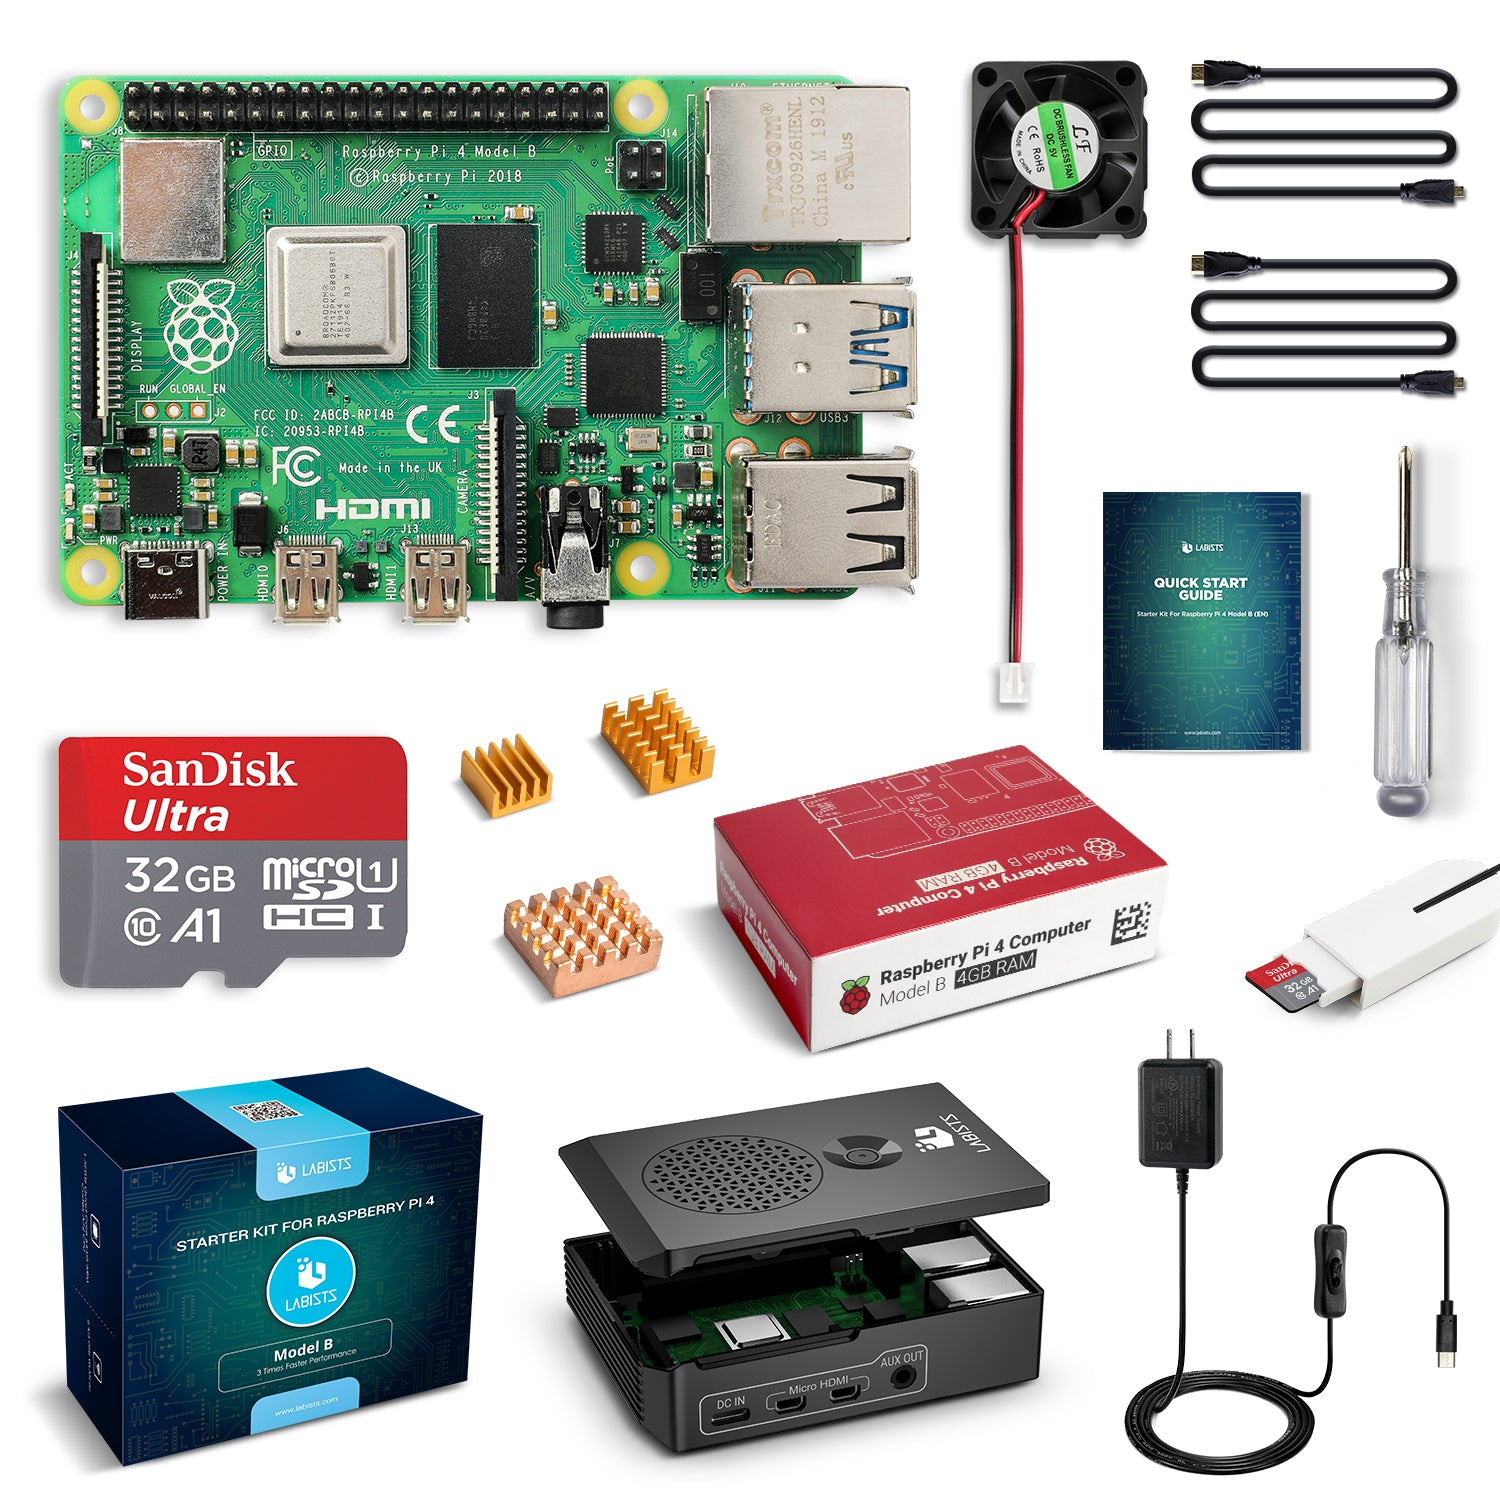 LABISTS Raspberry Pi 4 4GB Complete Starter Kit with 32GB Micro SD Card